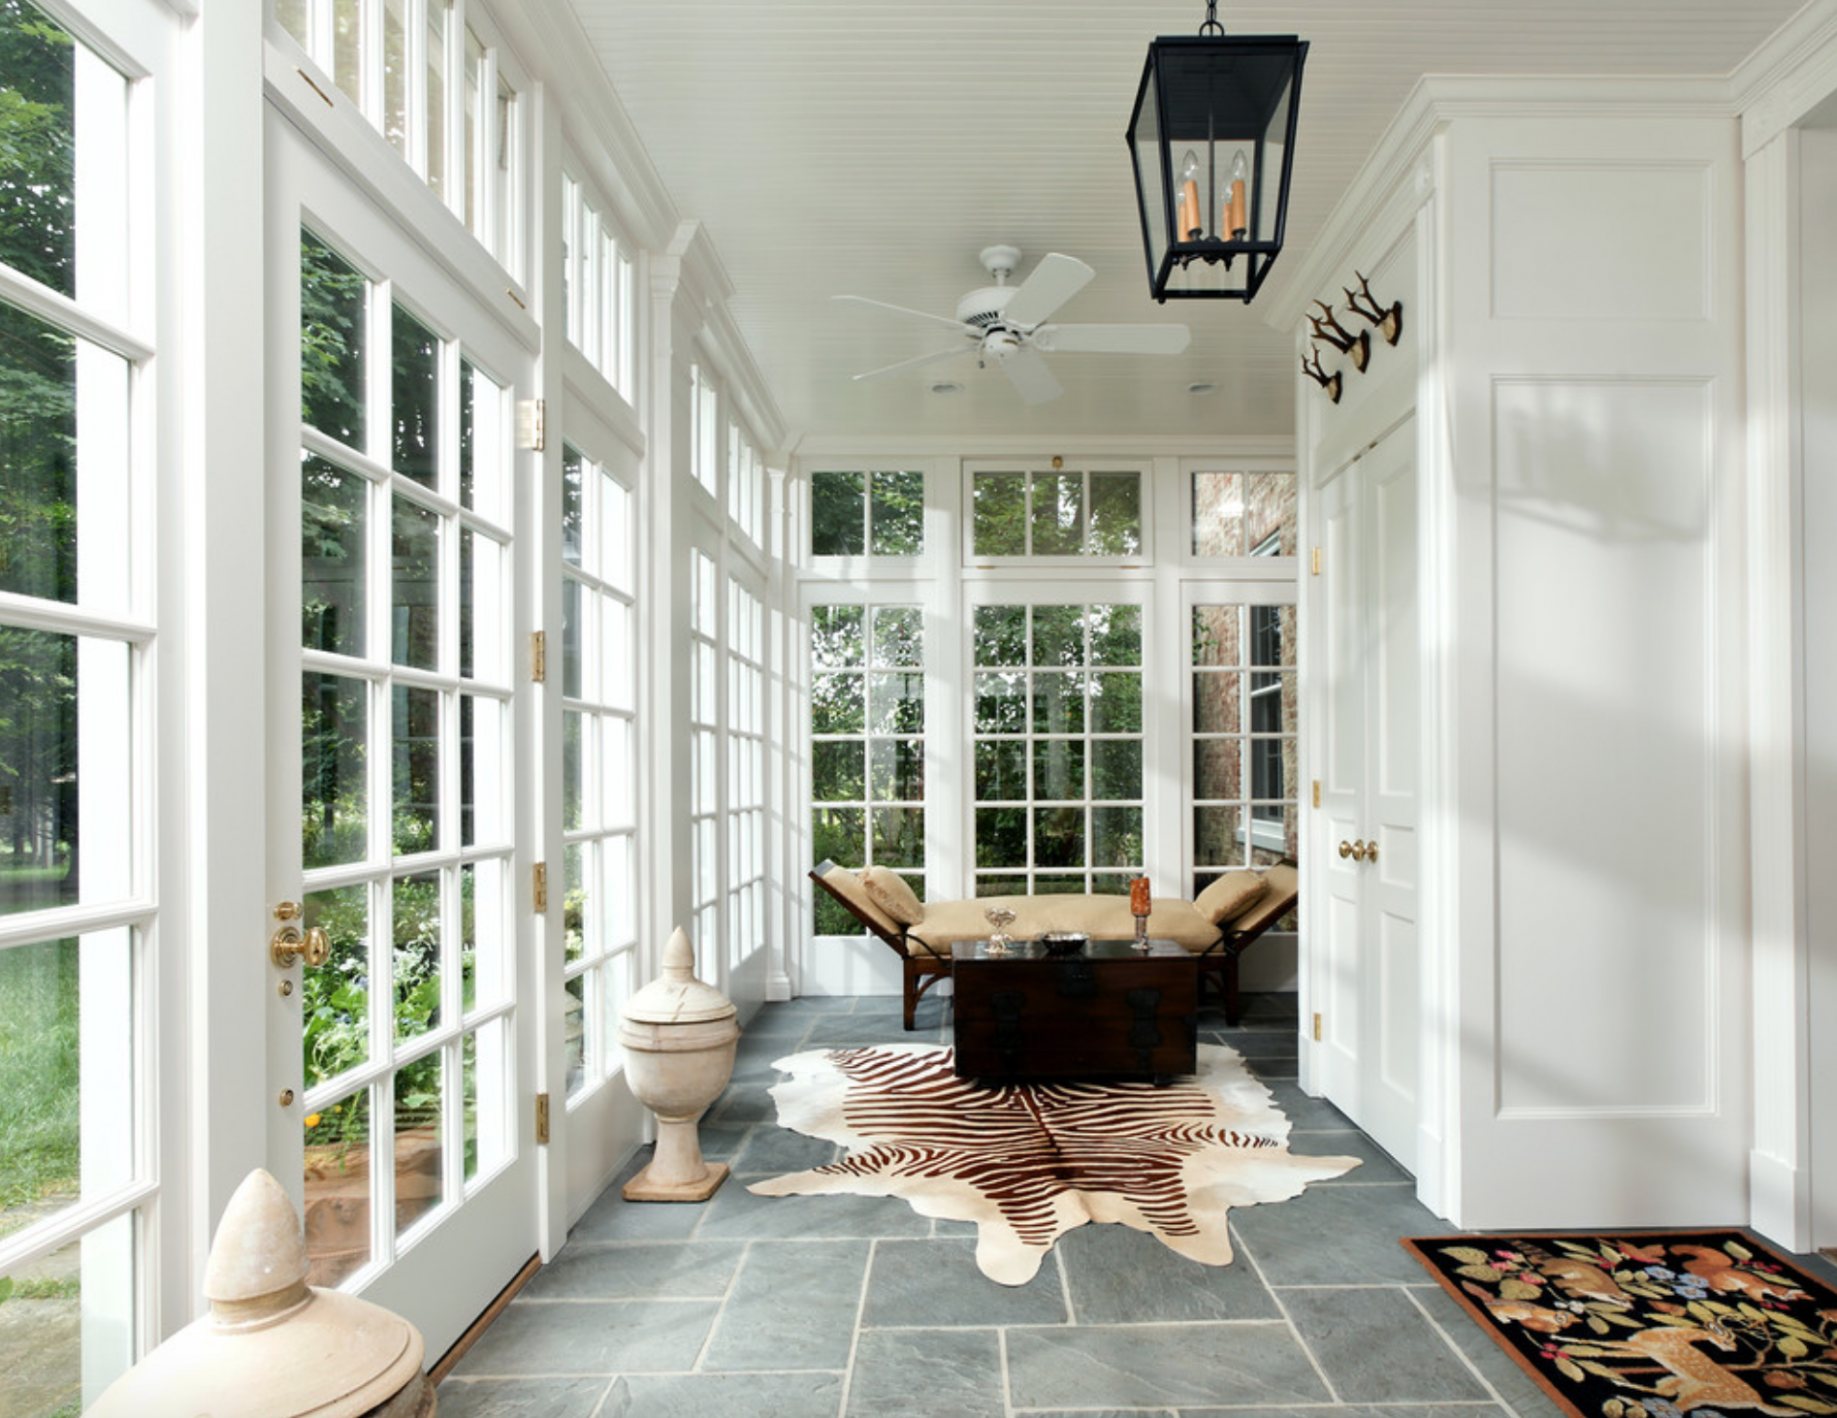 Bluestone tile, glass windows, hall (With images) | Sunroom ...